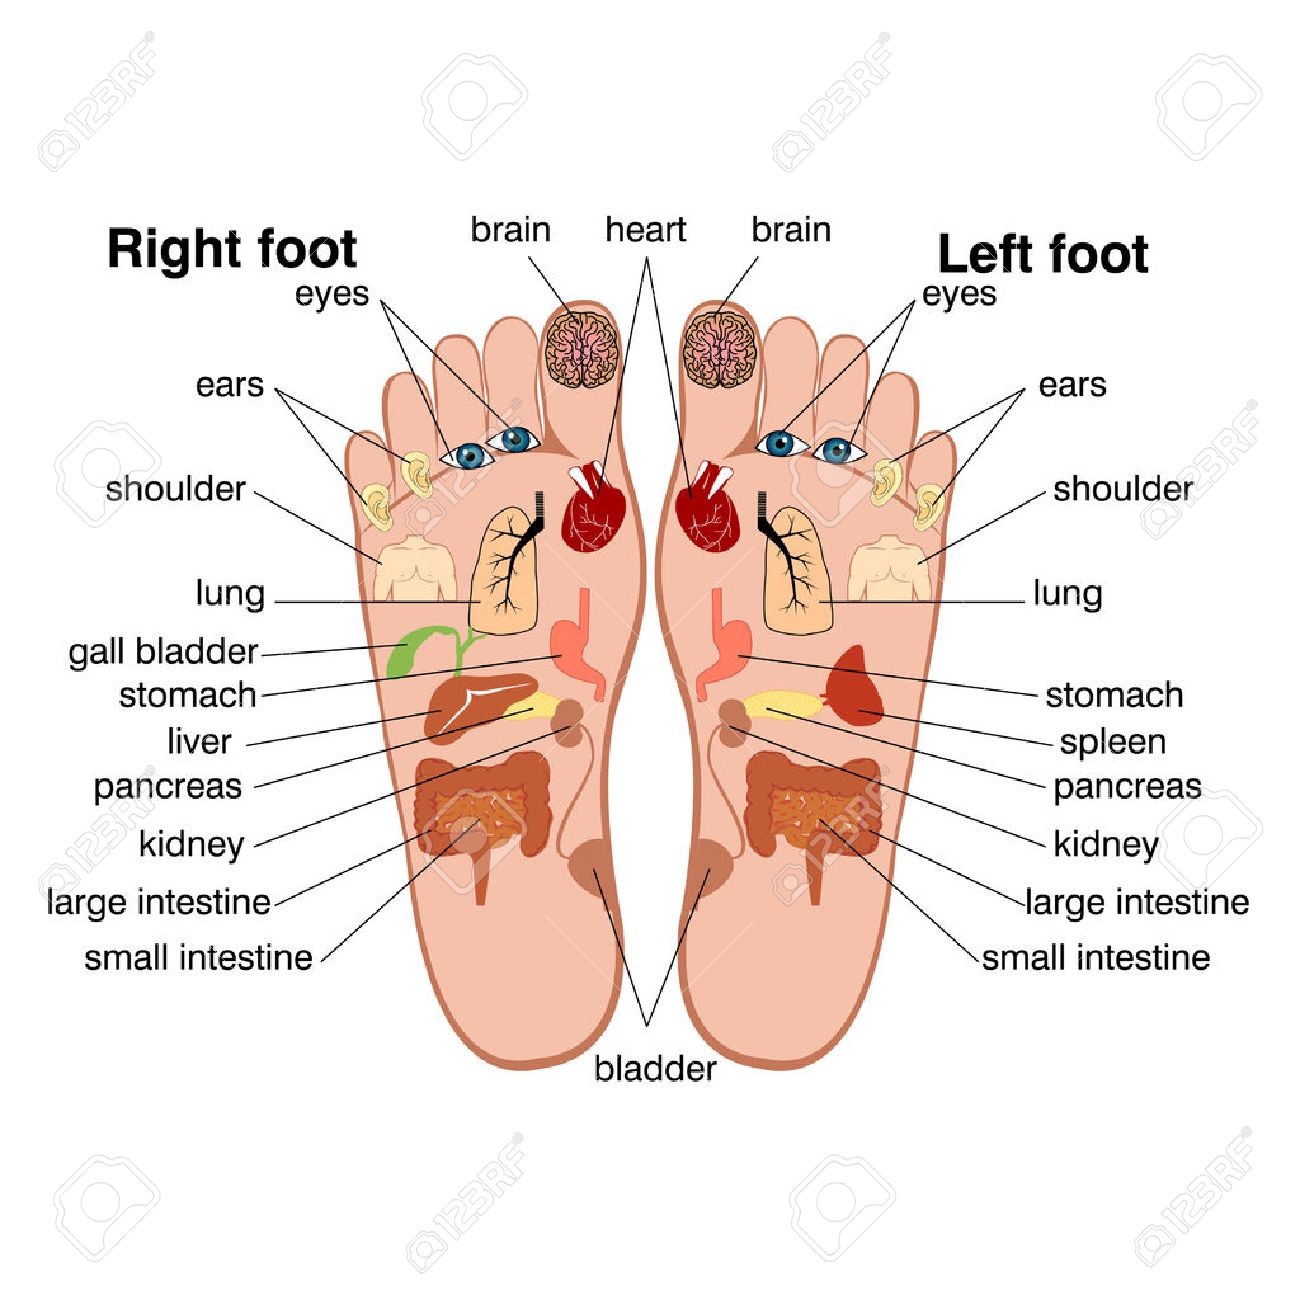 Reflexology zones of the feet royalty free cliparts vetores e banco de imagens reflexology zones of the feet ccuart Images